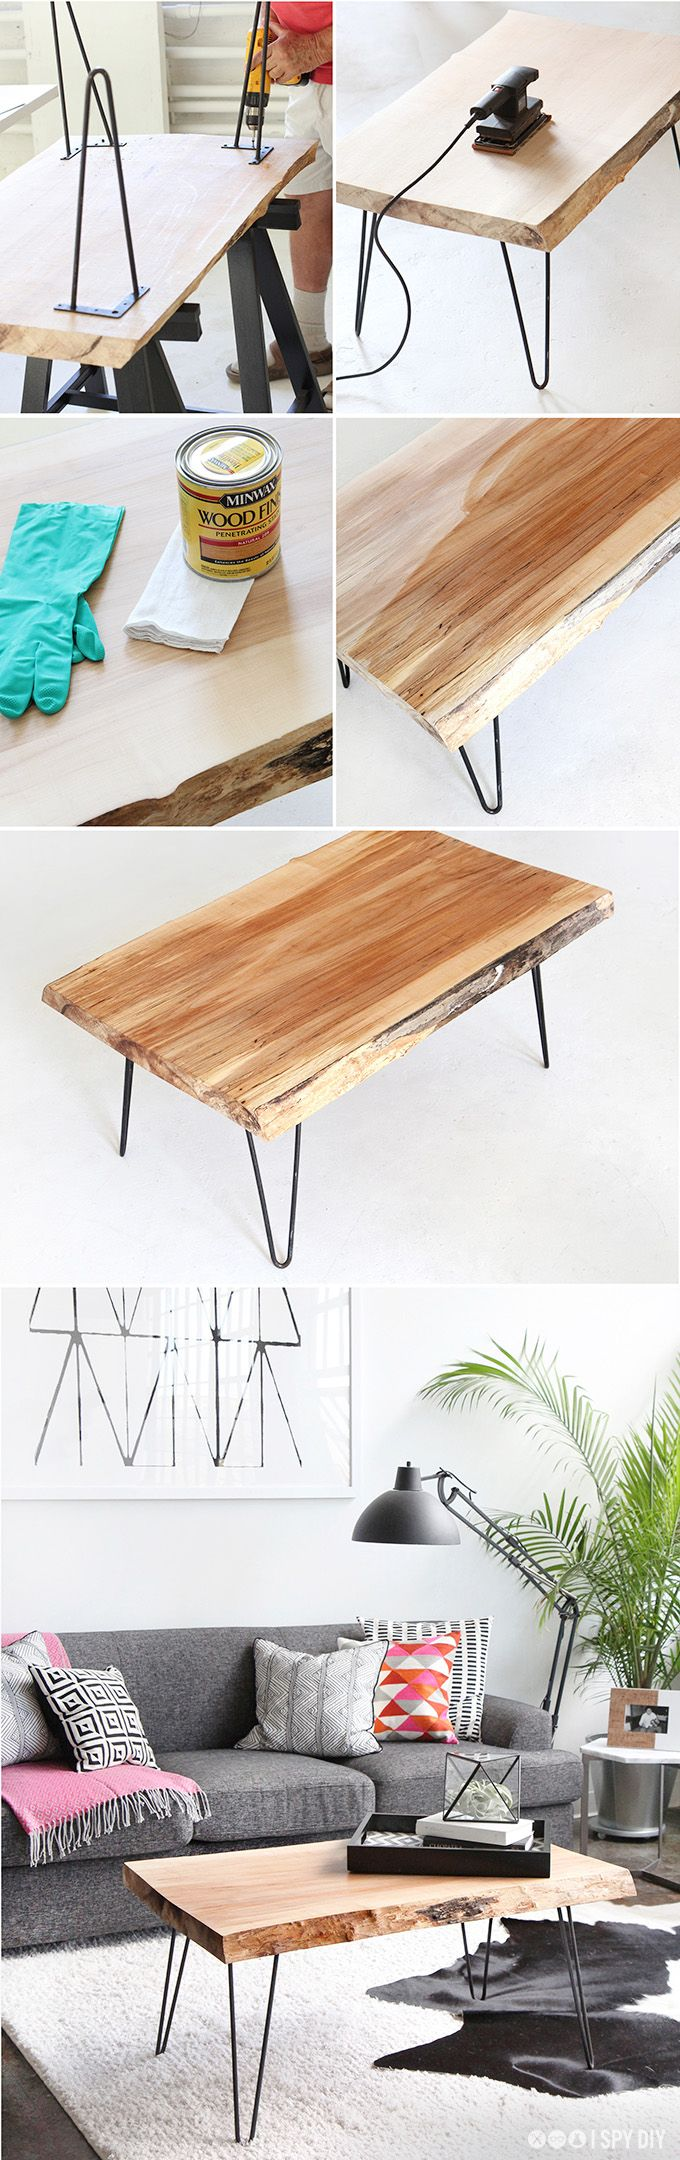 ispydiy_woodslabtable_Steps